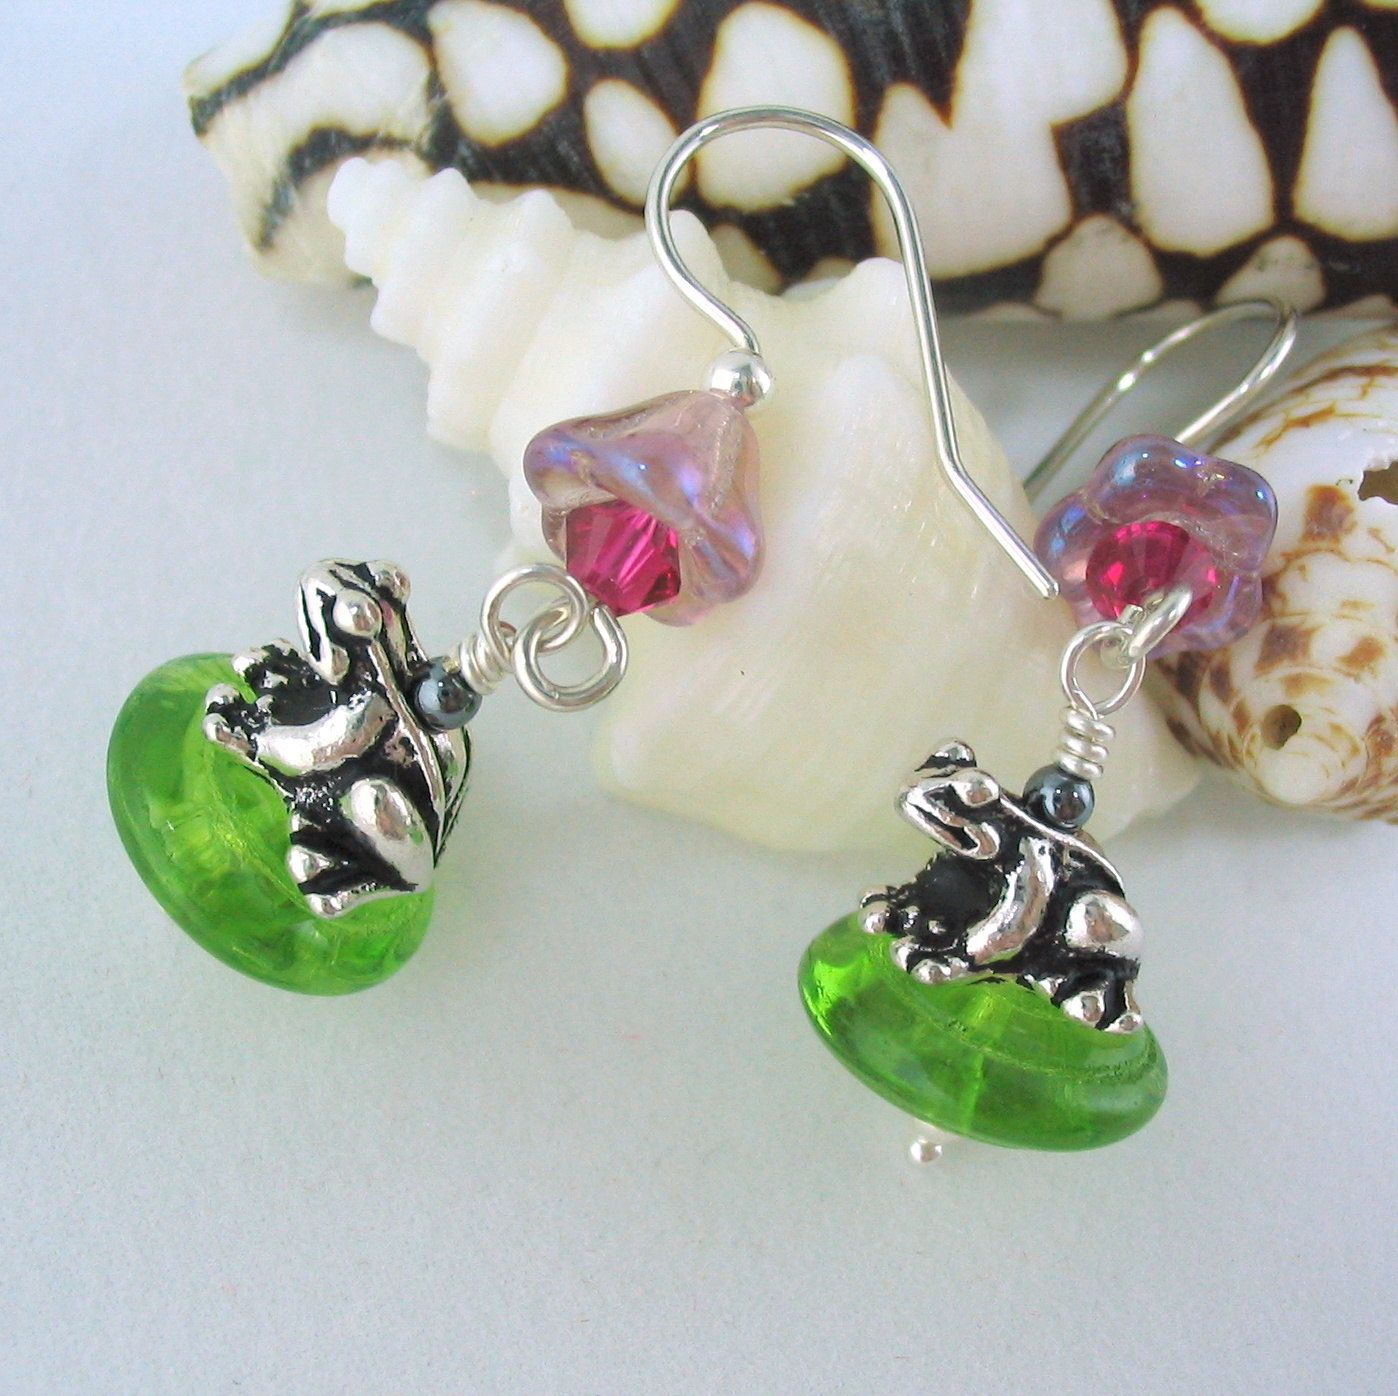 Whimsical Jewelry Silver Enchanted Frog Earrings. 26.00